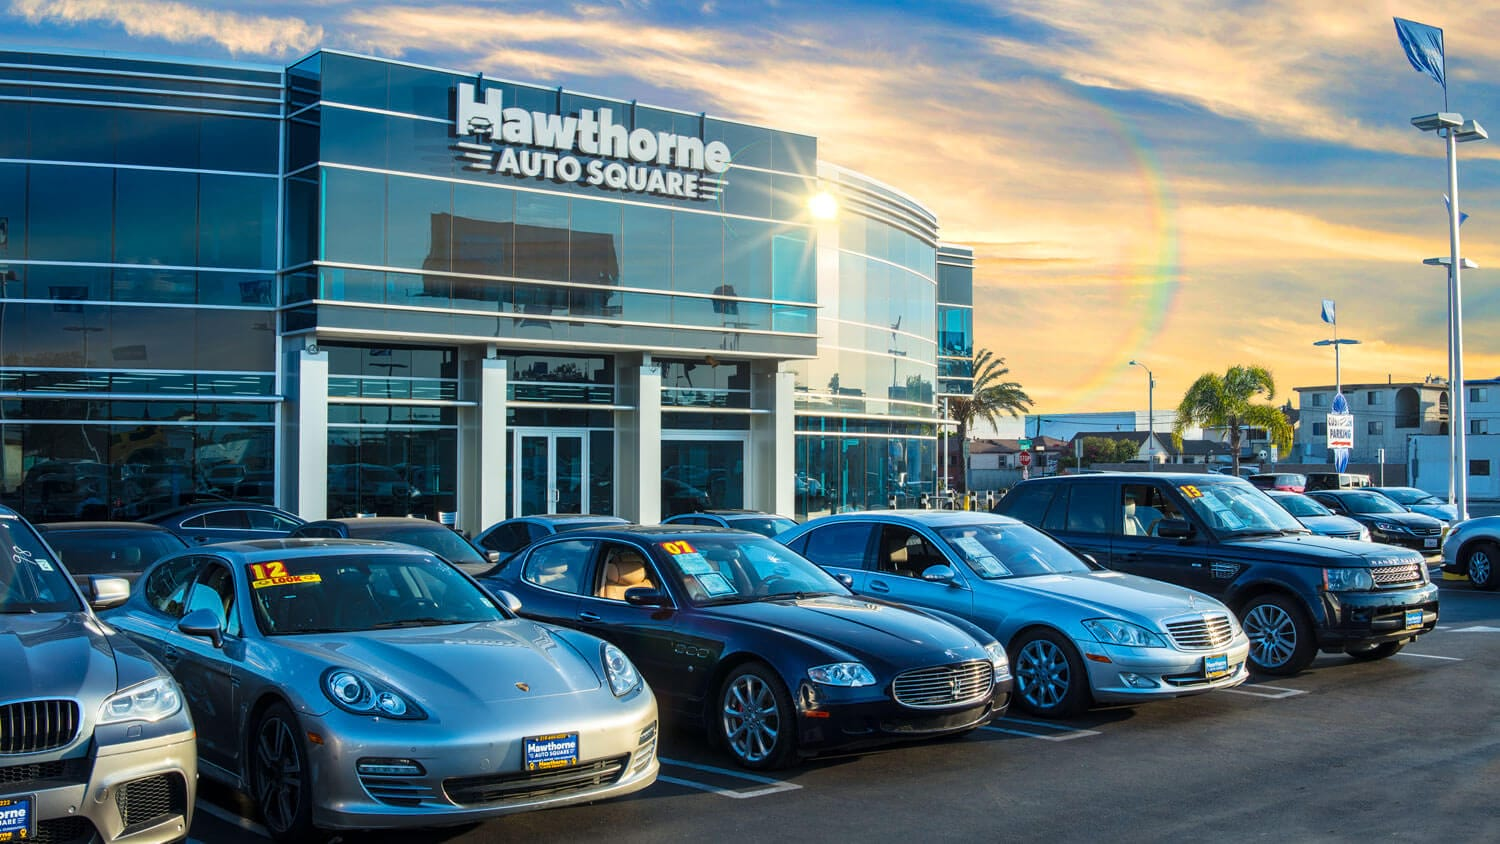 Cheap Car Dealerships Near Me >> Los Angeles Buy Here Pay Here Car Lot Hawthorne Auto Square